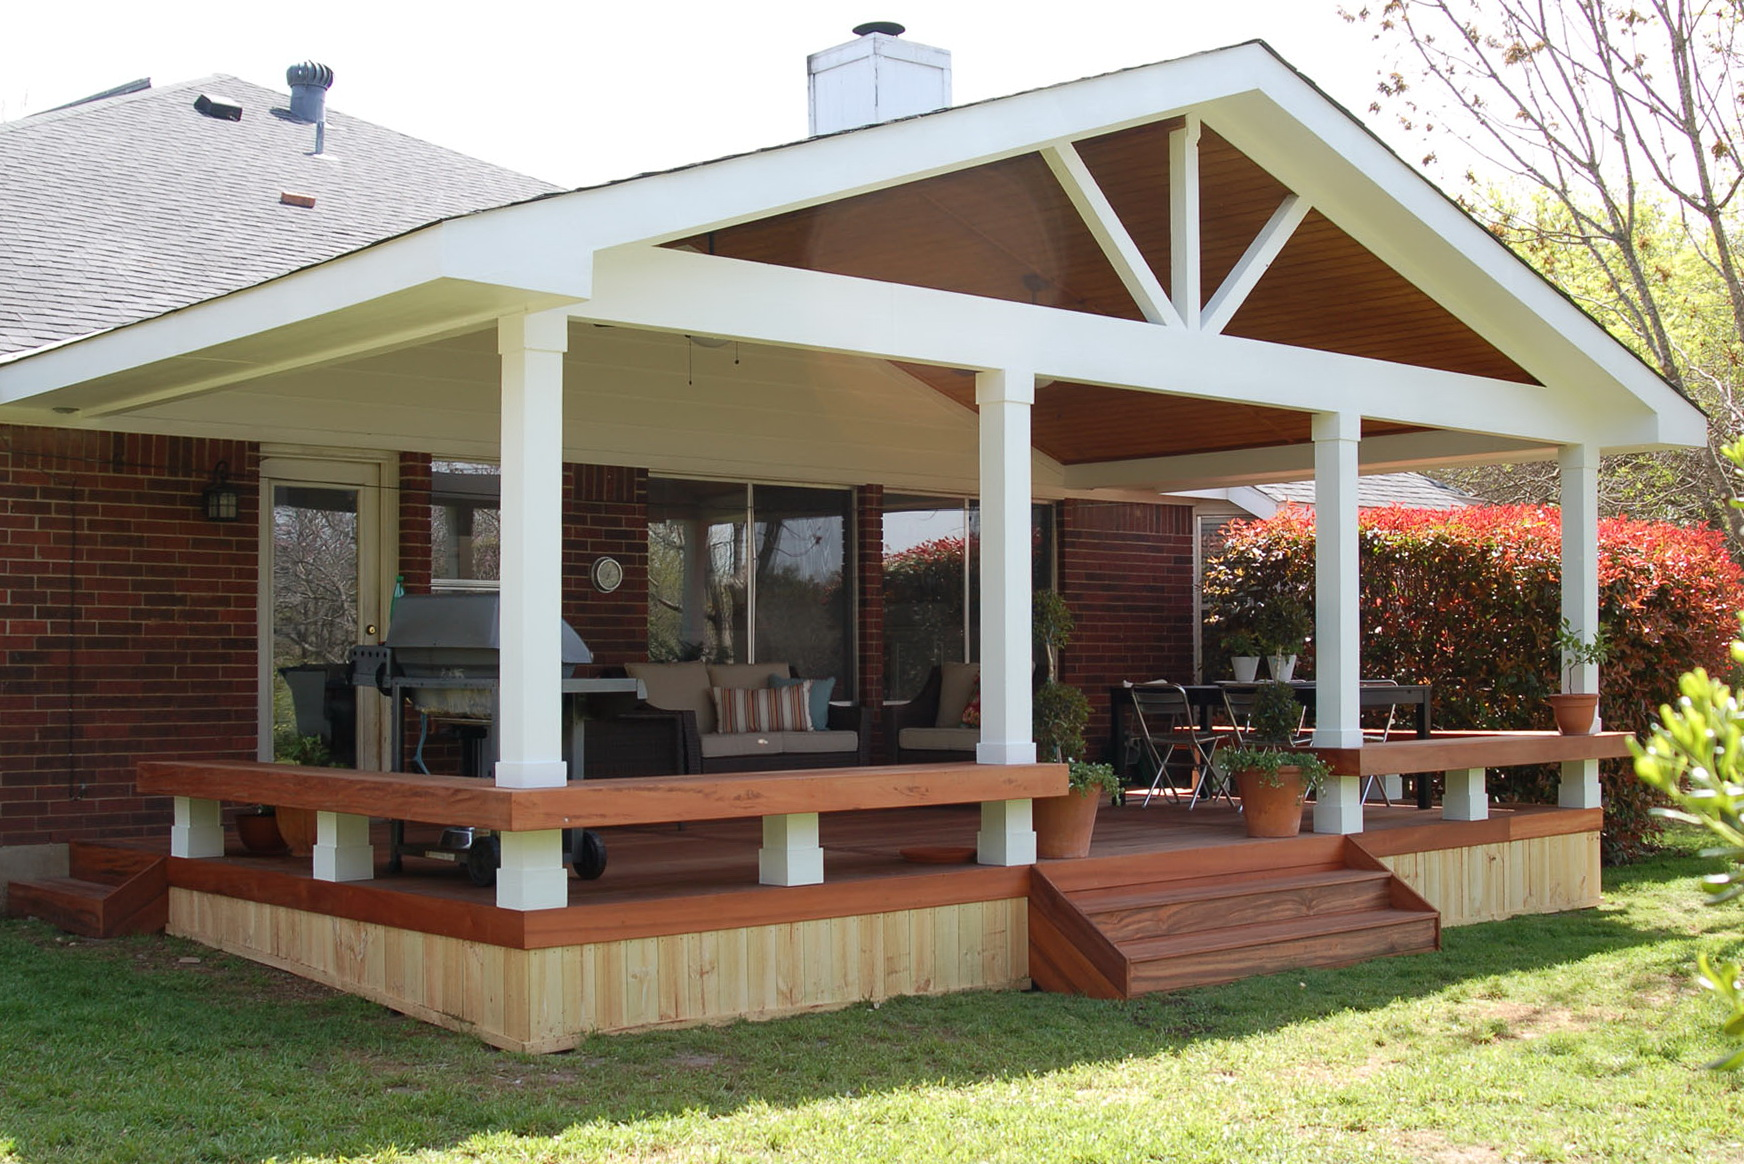 Covered Decks Offers an Extra Place To Enjoy - CareHomeDecor on Covered Back Deck Designs id=35362